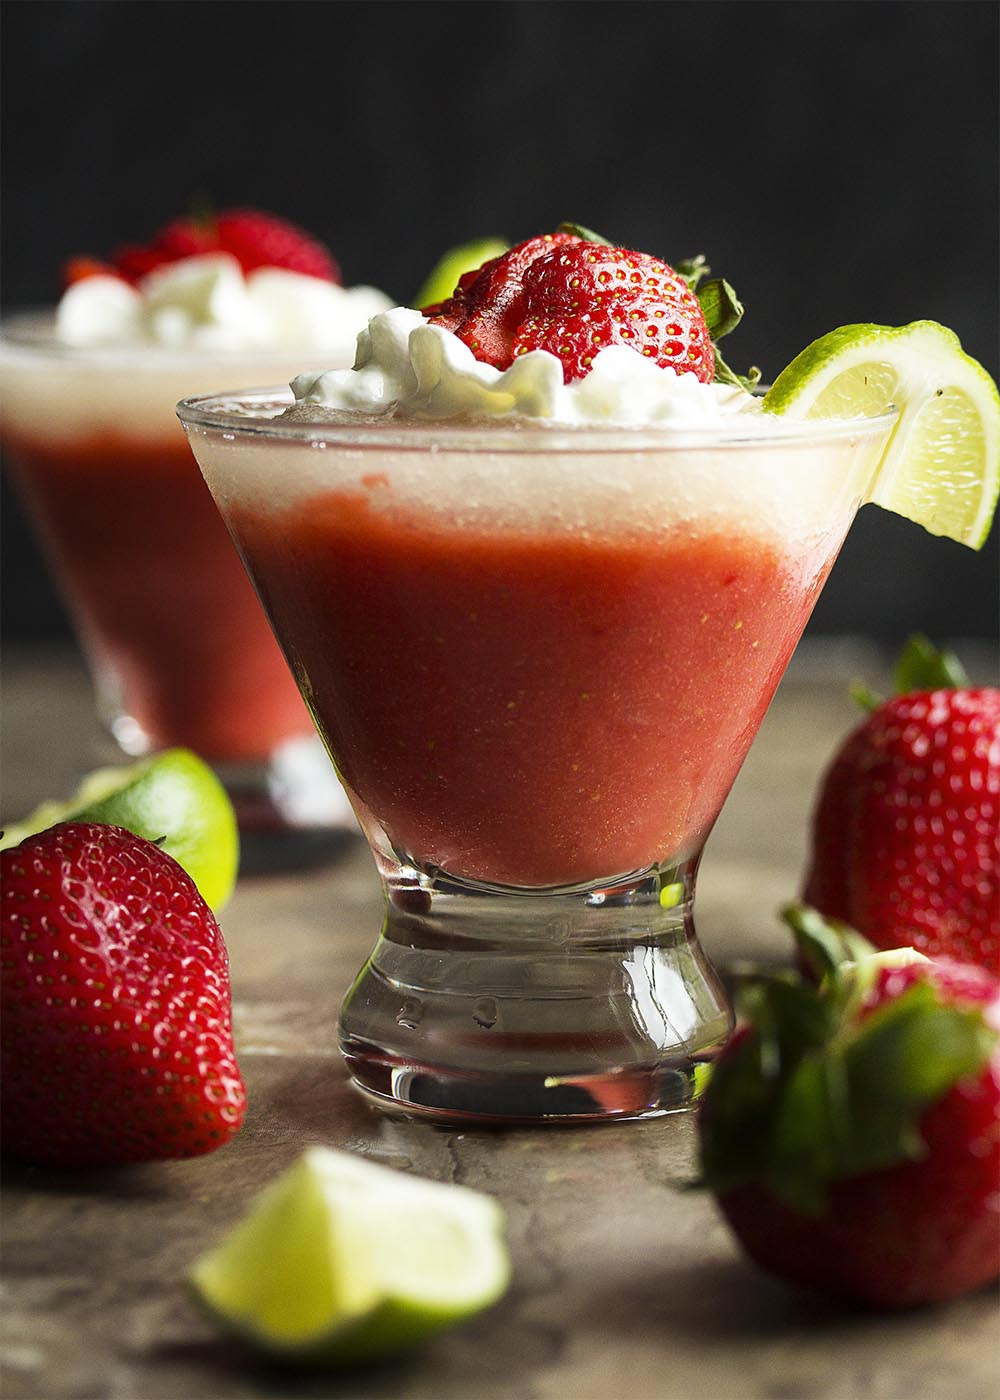 Side view of a frozen strawberry daiquiri with a layer of lime daiquiri on top. The drink garnished with whipped cream, sliced strawberries, and a lime slice.